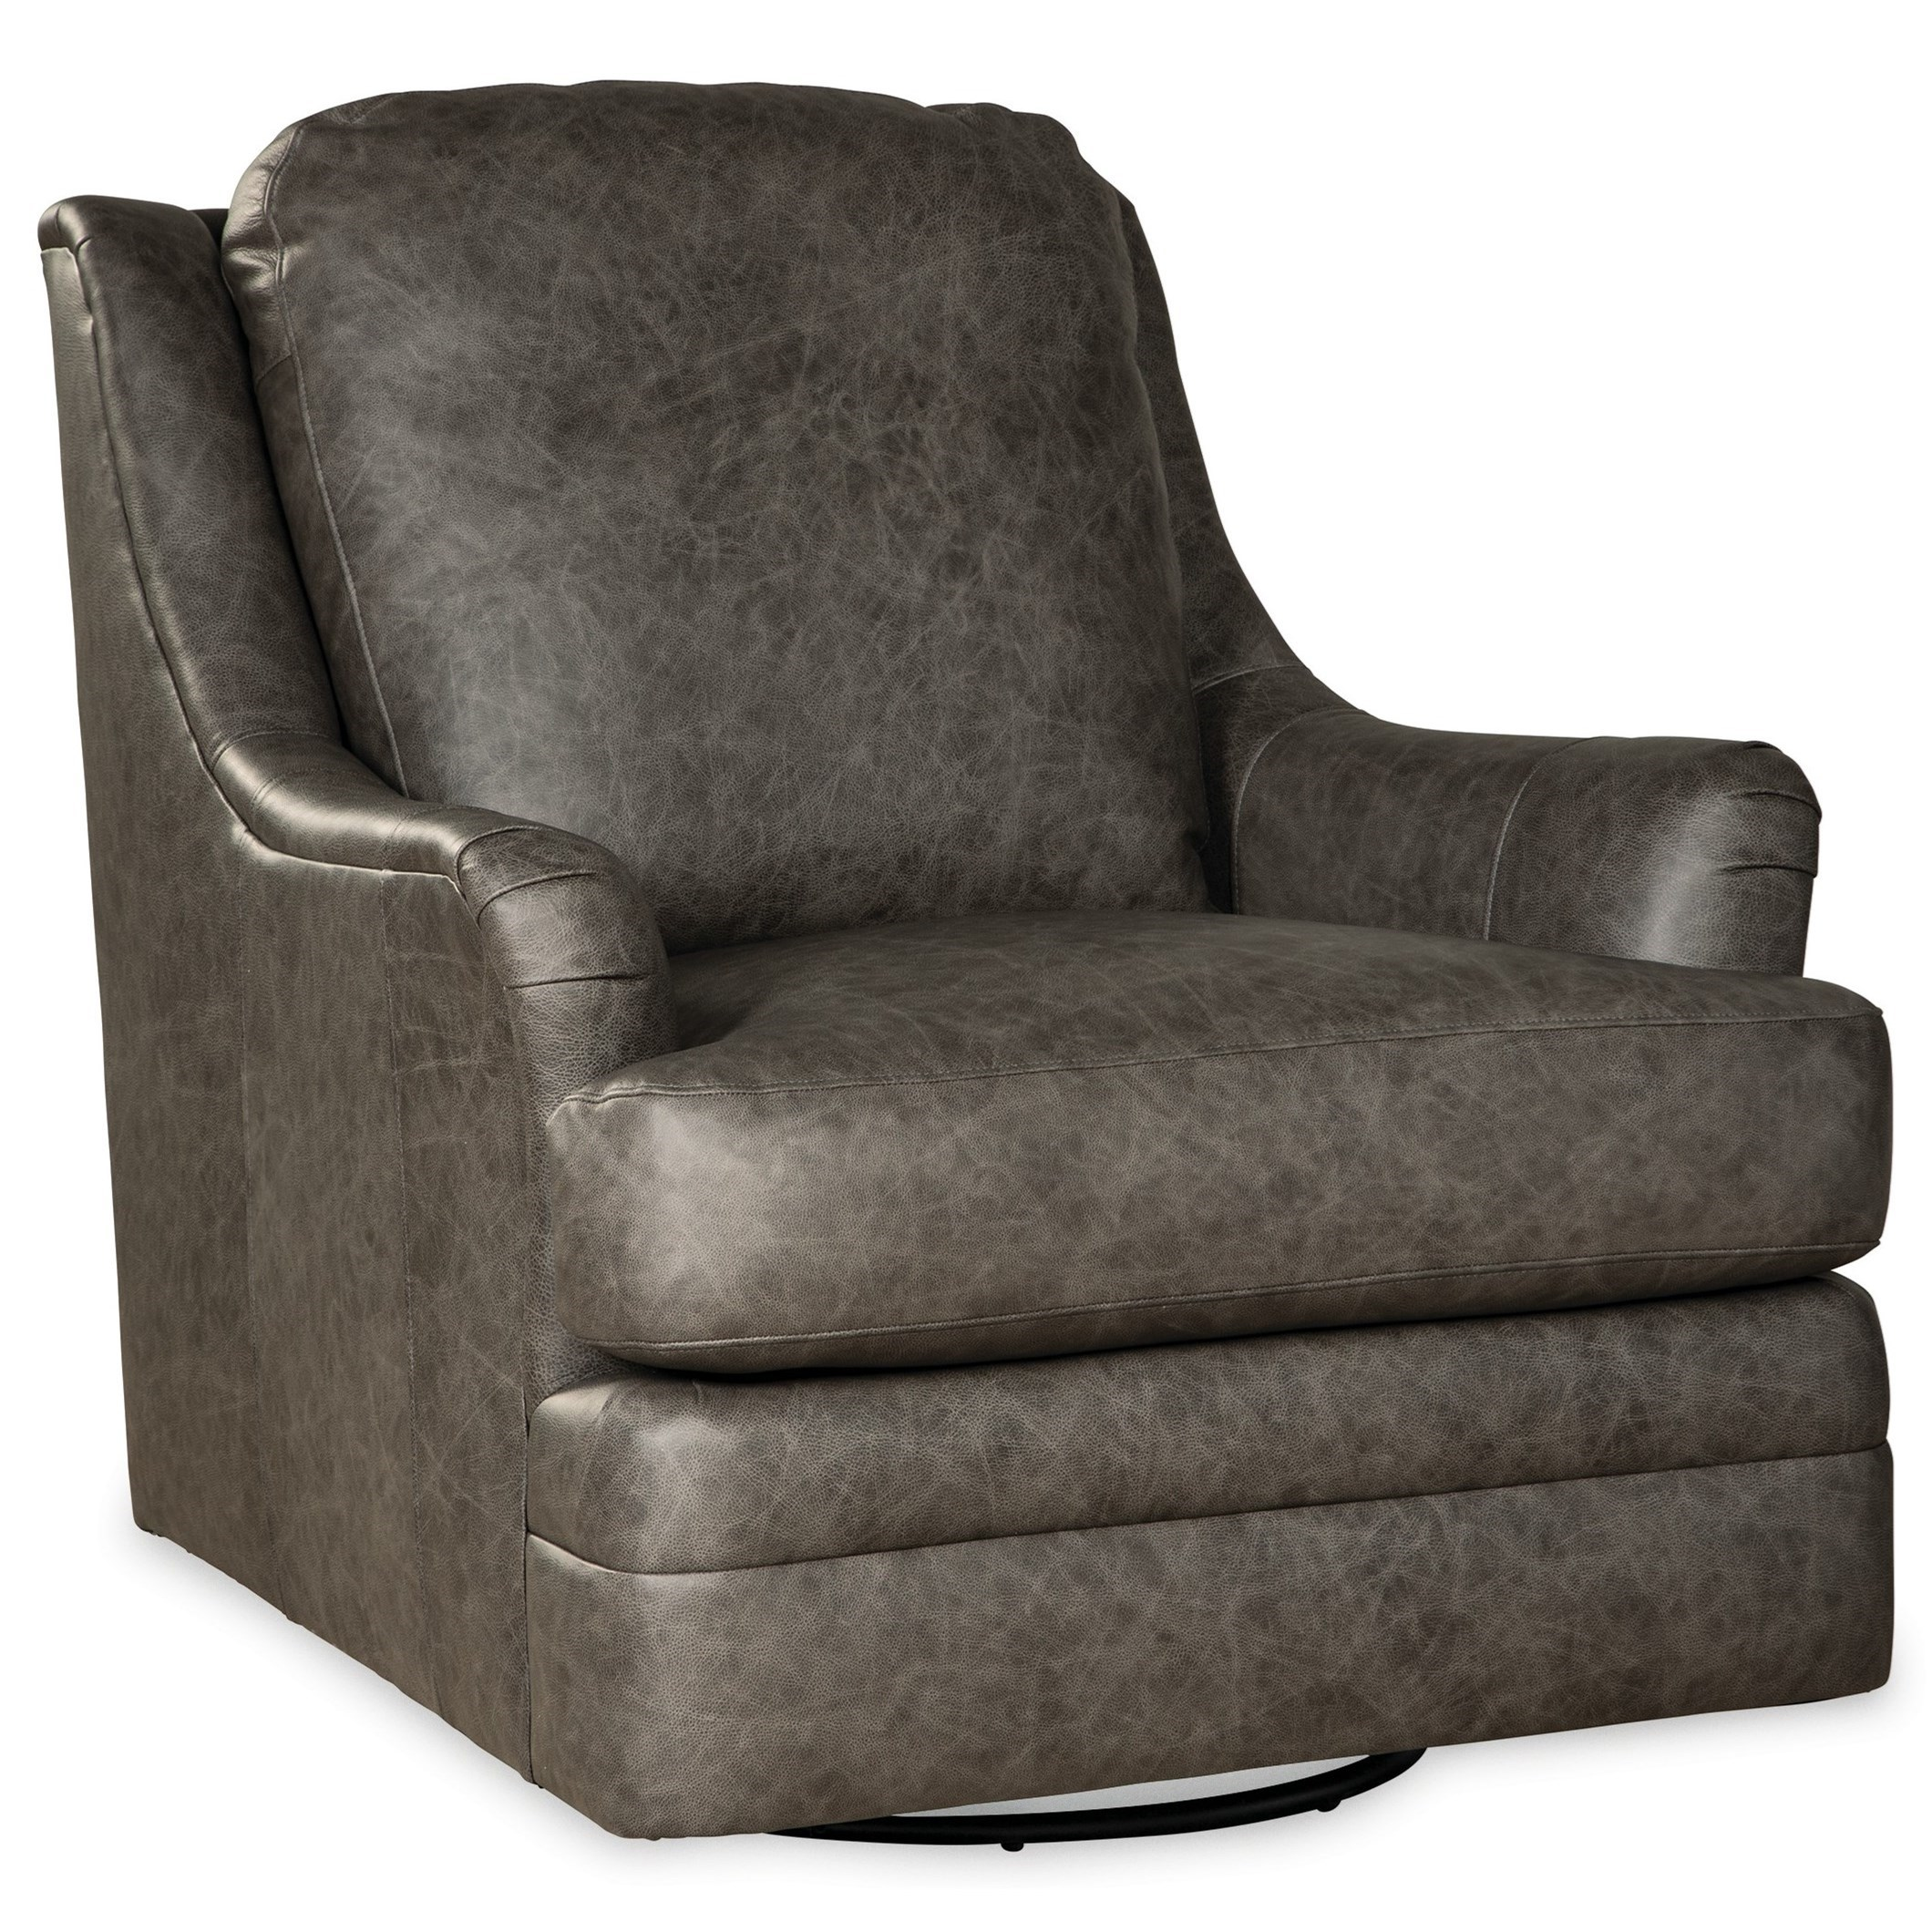 Craftmaster L084410 Transitional Swivel Glider Chair Lagniappe Home Store Upholstered Chairs